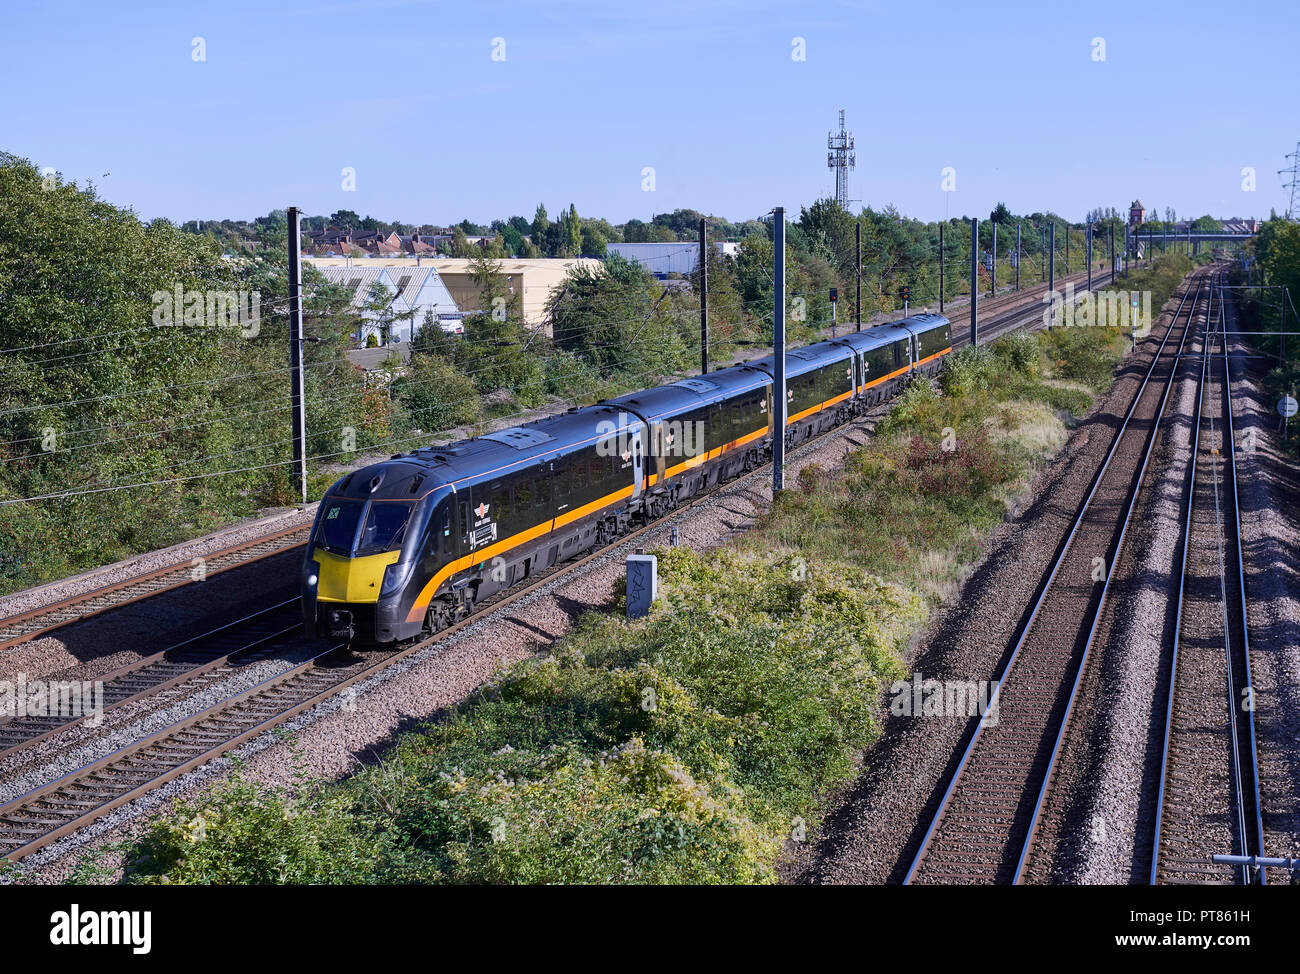 Grand Central trains 1801 112 forms 1D73 1448 London Kings Cross to Bradford Interchange service through Werrington Junction on the East Coast Mainlin - Stock Image